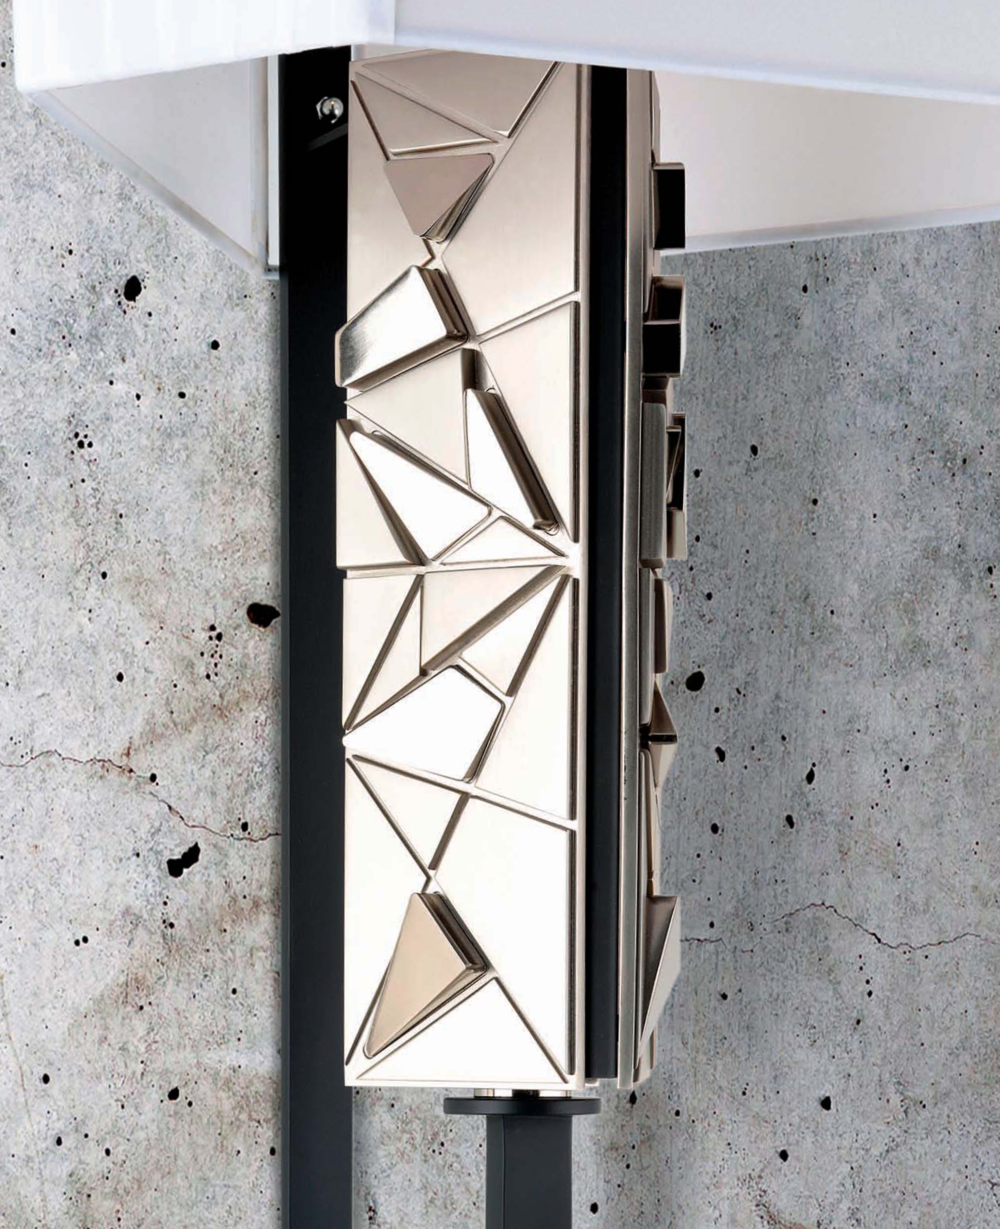 Officina Luce Crea wall light in nickel detail | Masha Shapiro Agency.png